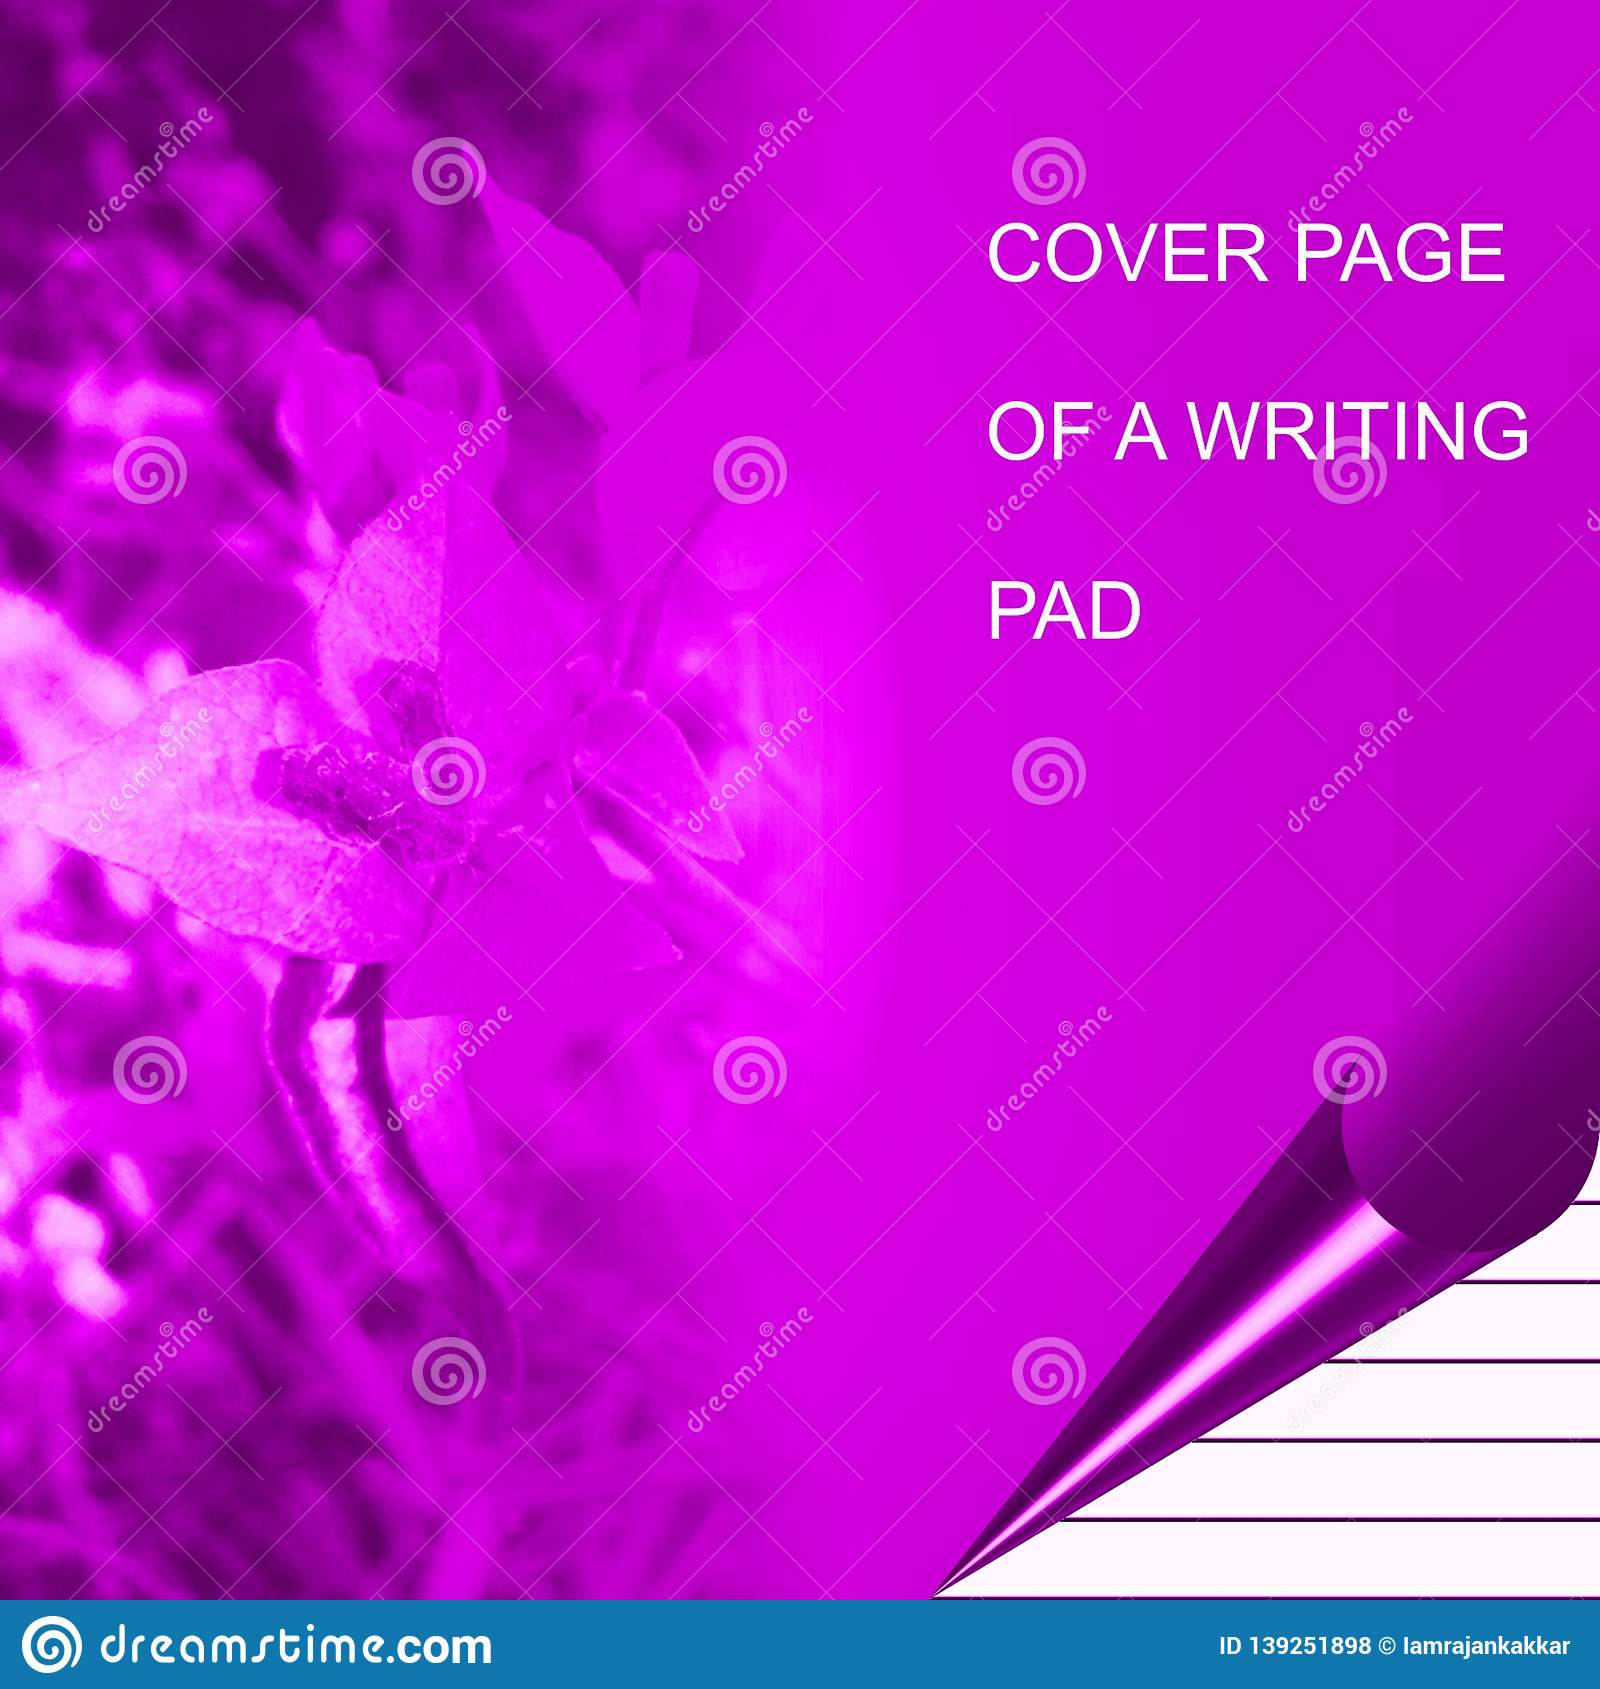 Purple Color Writing Pad Shaded With Lighting Effect Computer Generated Background Image And Wallpaper Design Stock Illustration Illustration Of Computer Advertisement 139251898